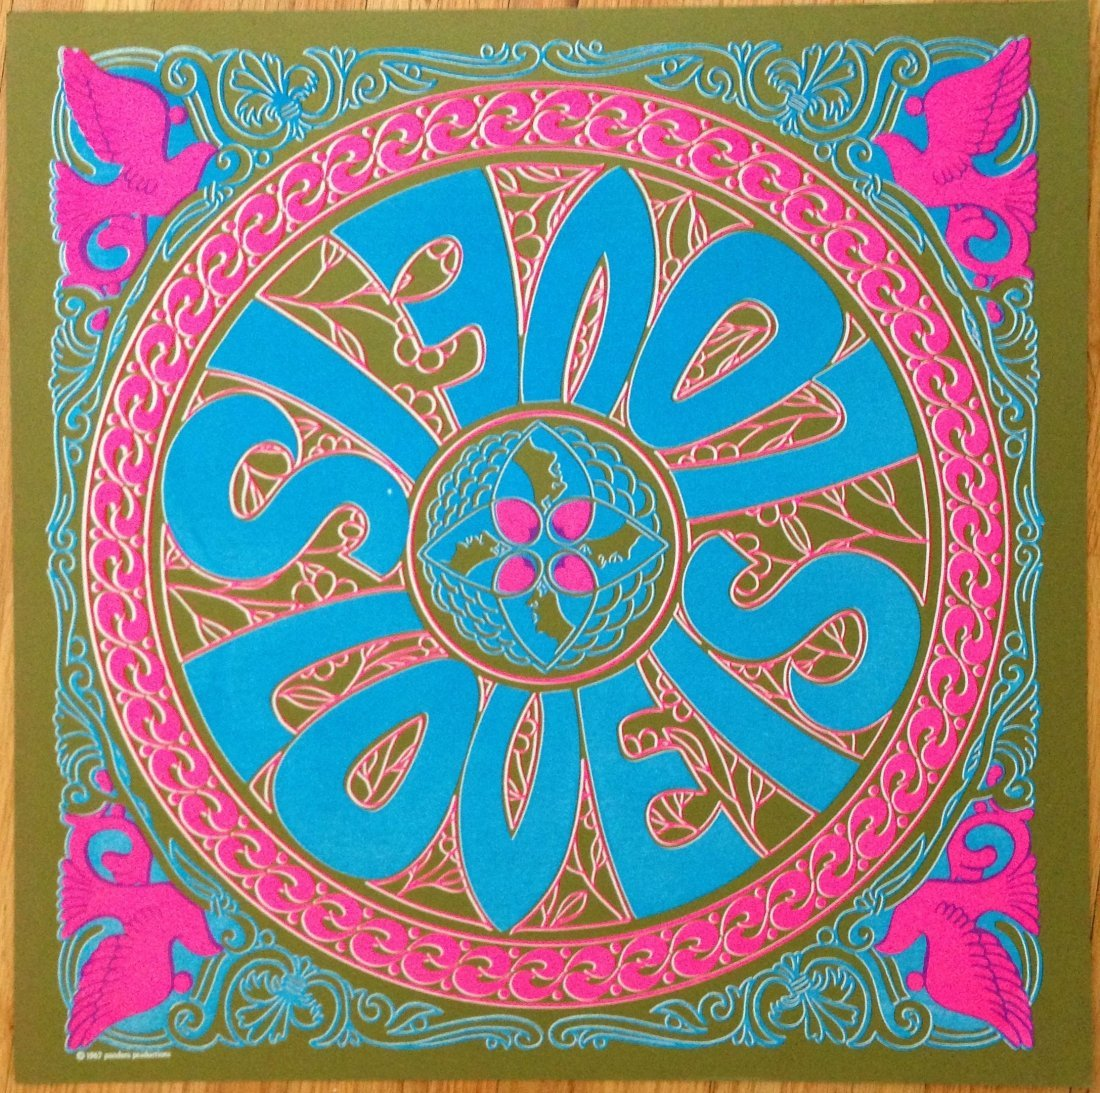 LOVE IS - VINTAGE HIPPY POSTER